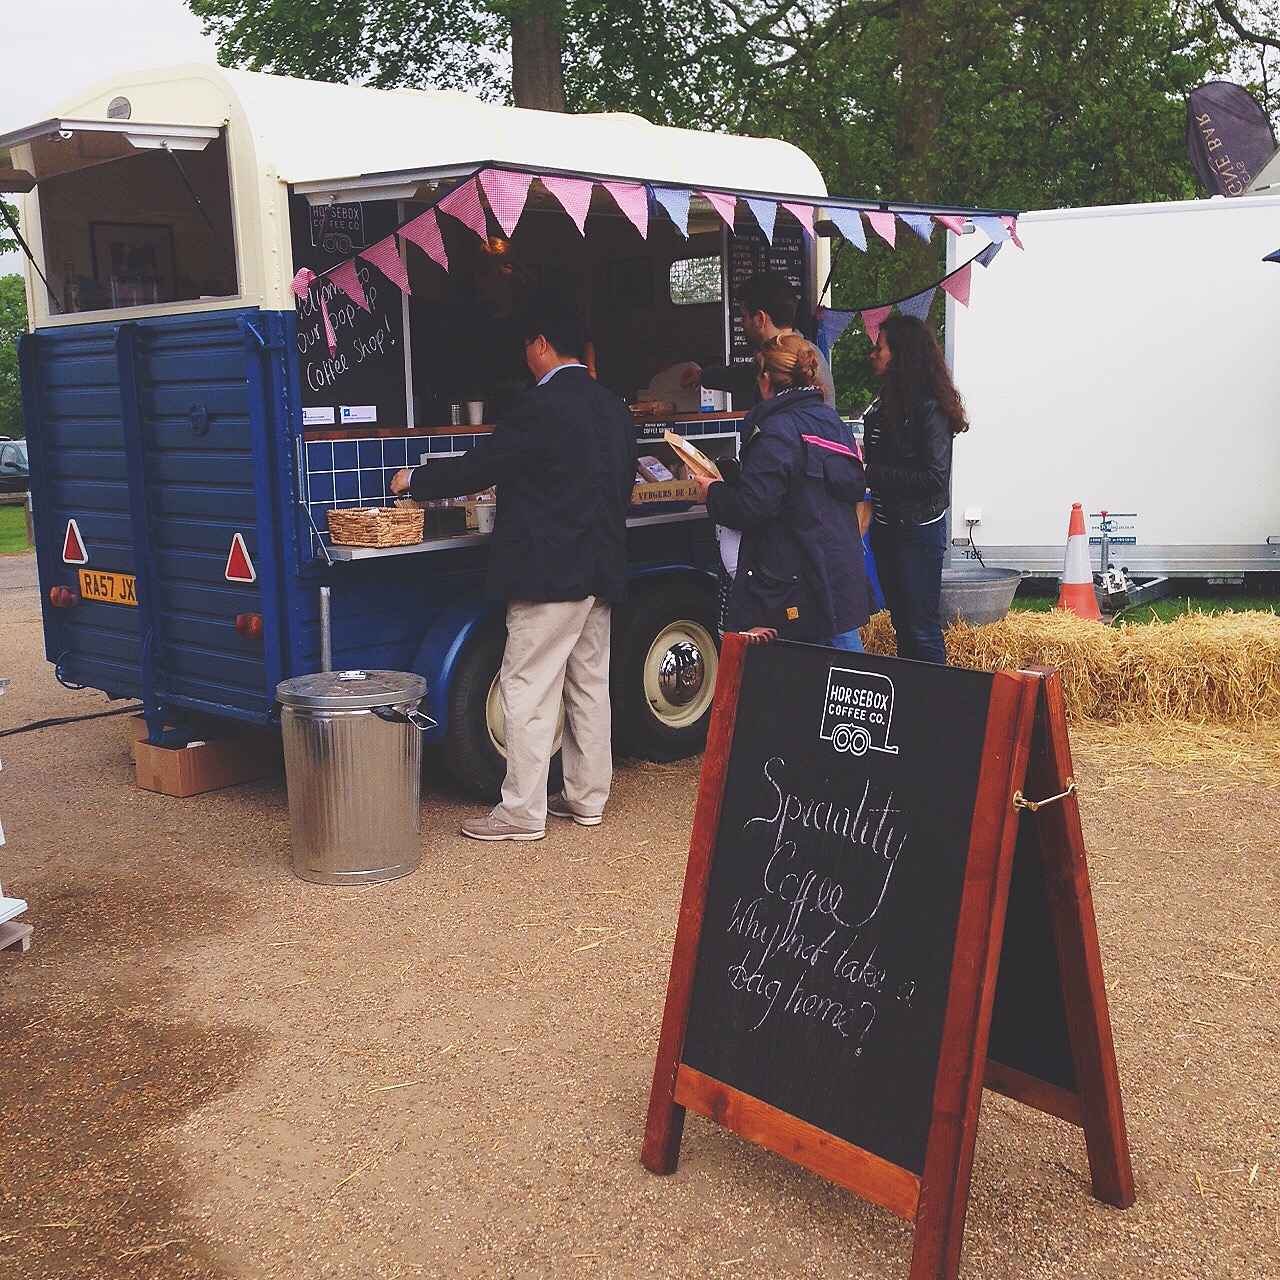 This tasty coffee kept us going over the bank holiday weekend! We hope to see  Horsebox Coffee Co.  at the next event.